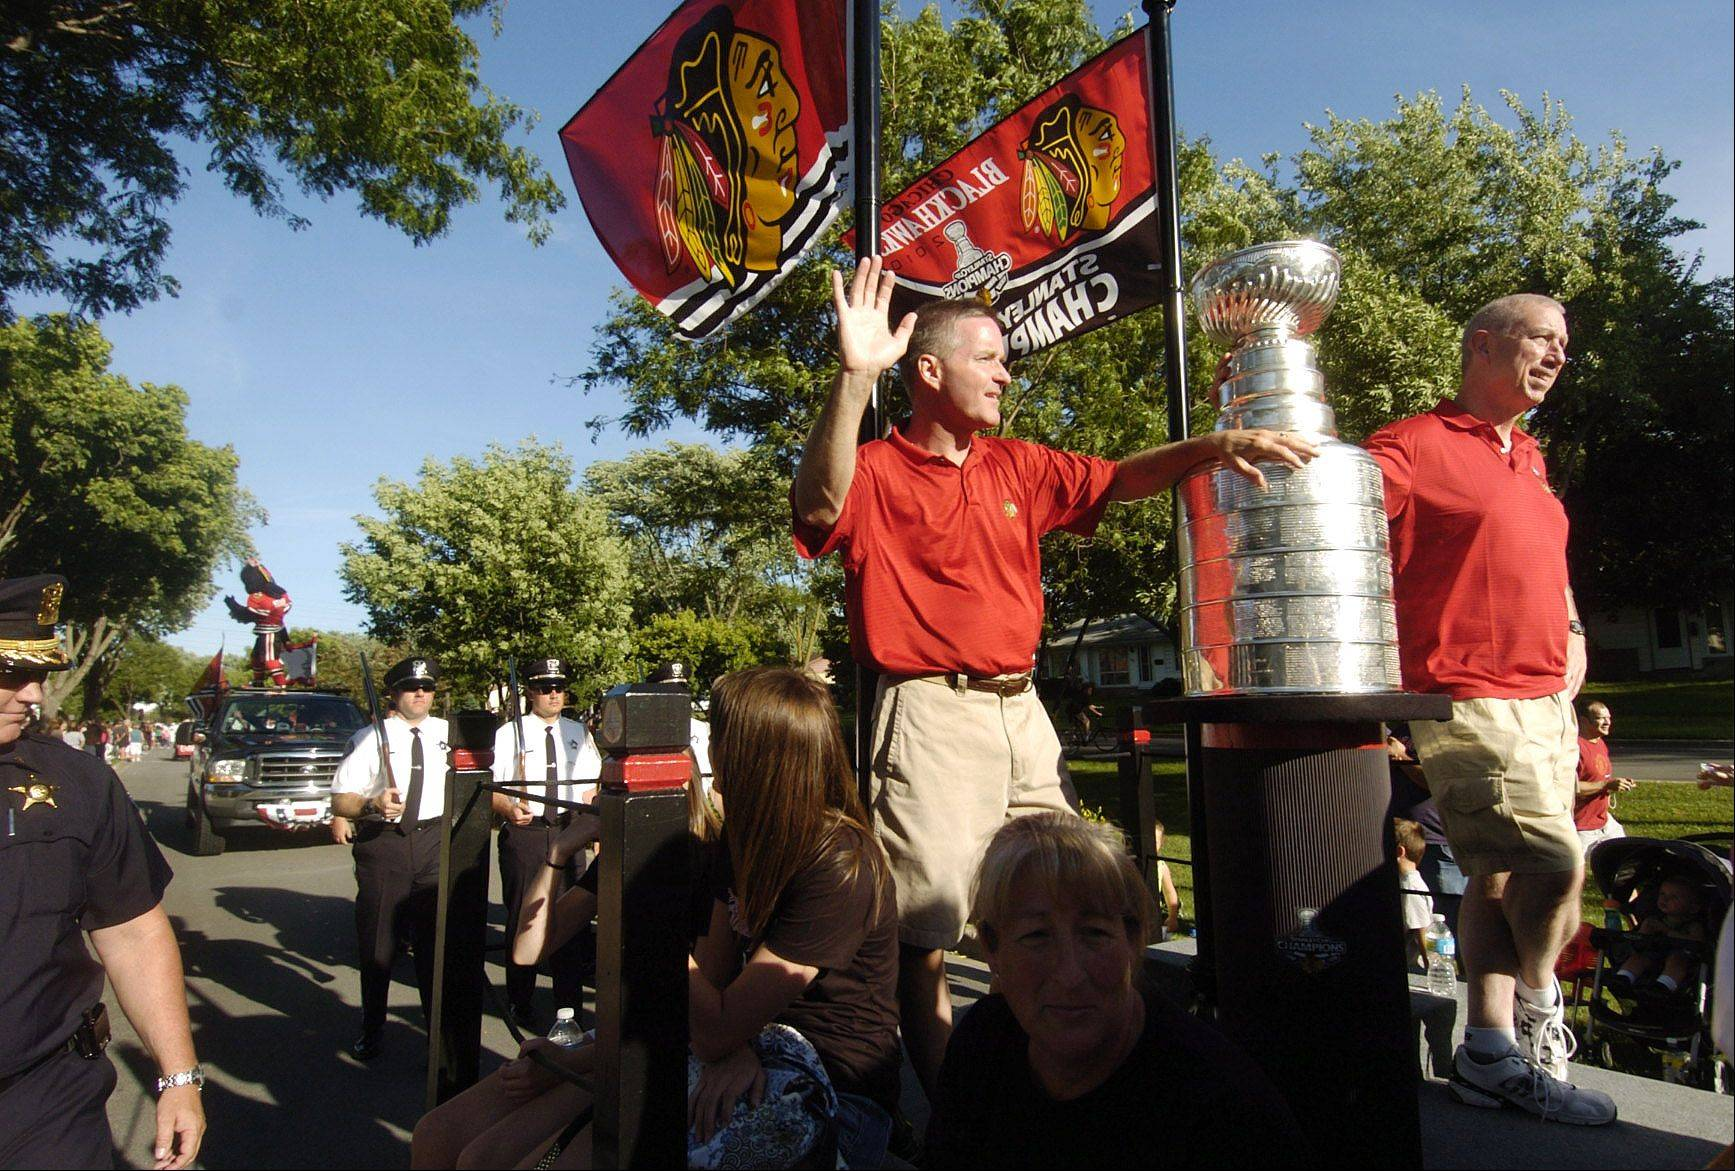 Chicago Blackhawks President and Elk Grove Village resident John McDonough, right, and Elk Grove Village Mayor Craig Johnson stand with the Stanley Cup during Elk Grove Village's HomeTown Parade in 2010.